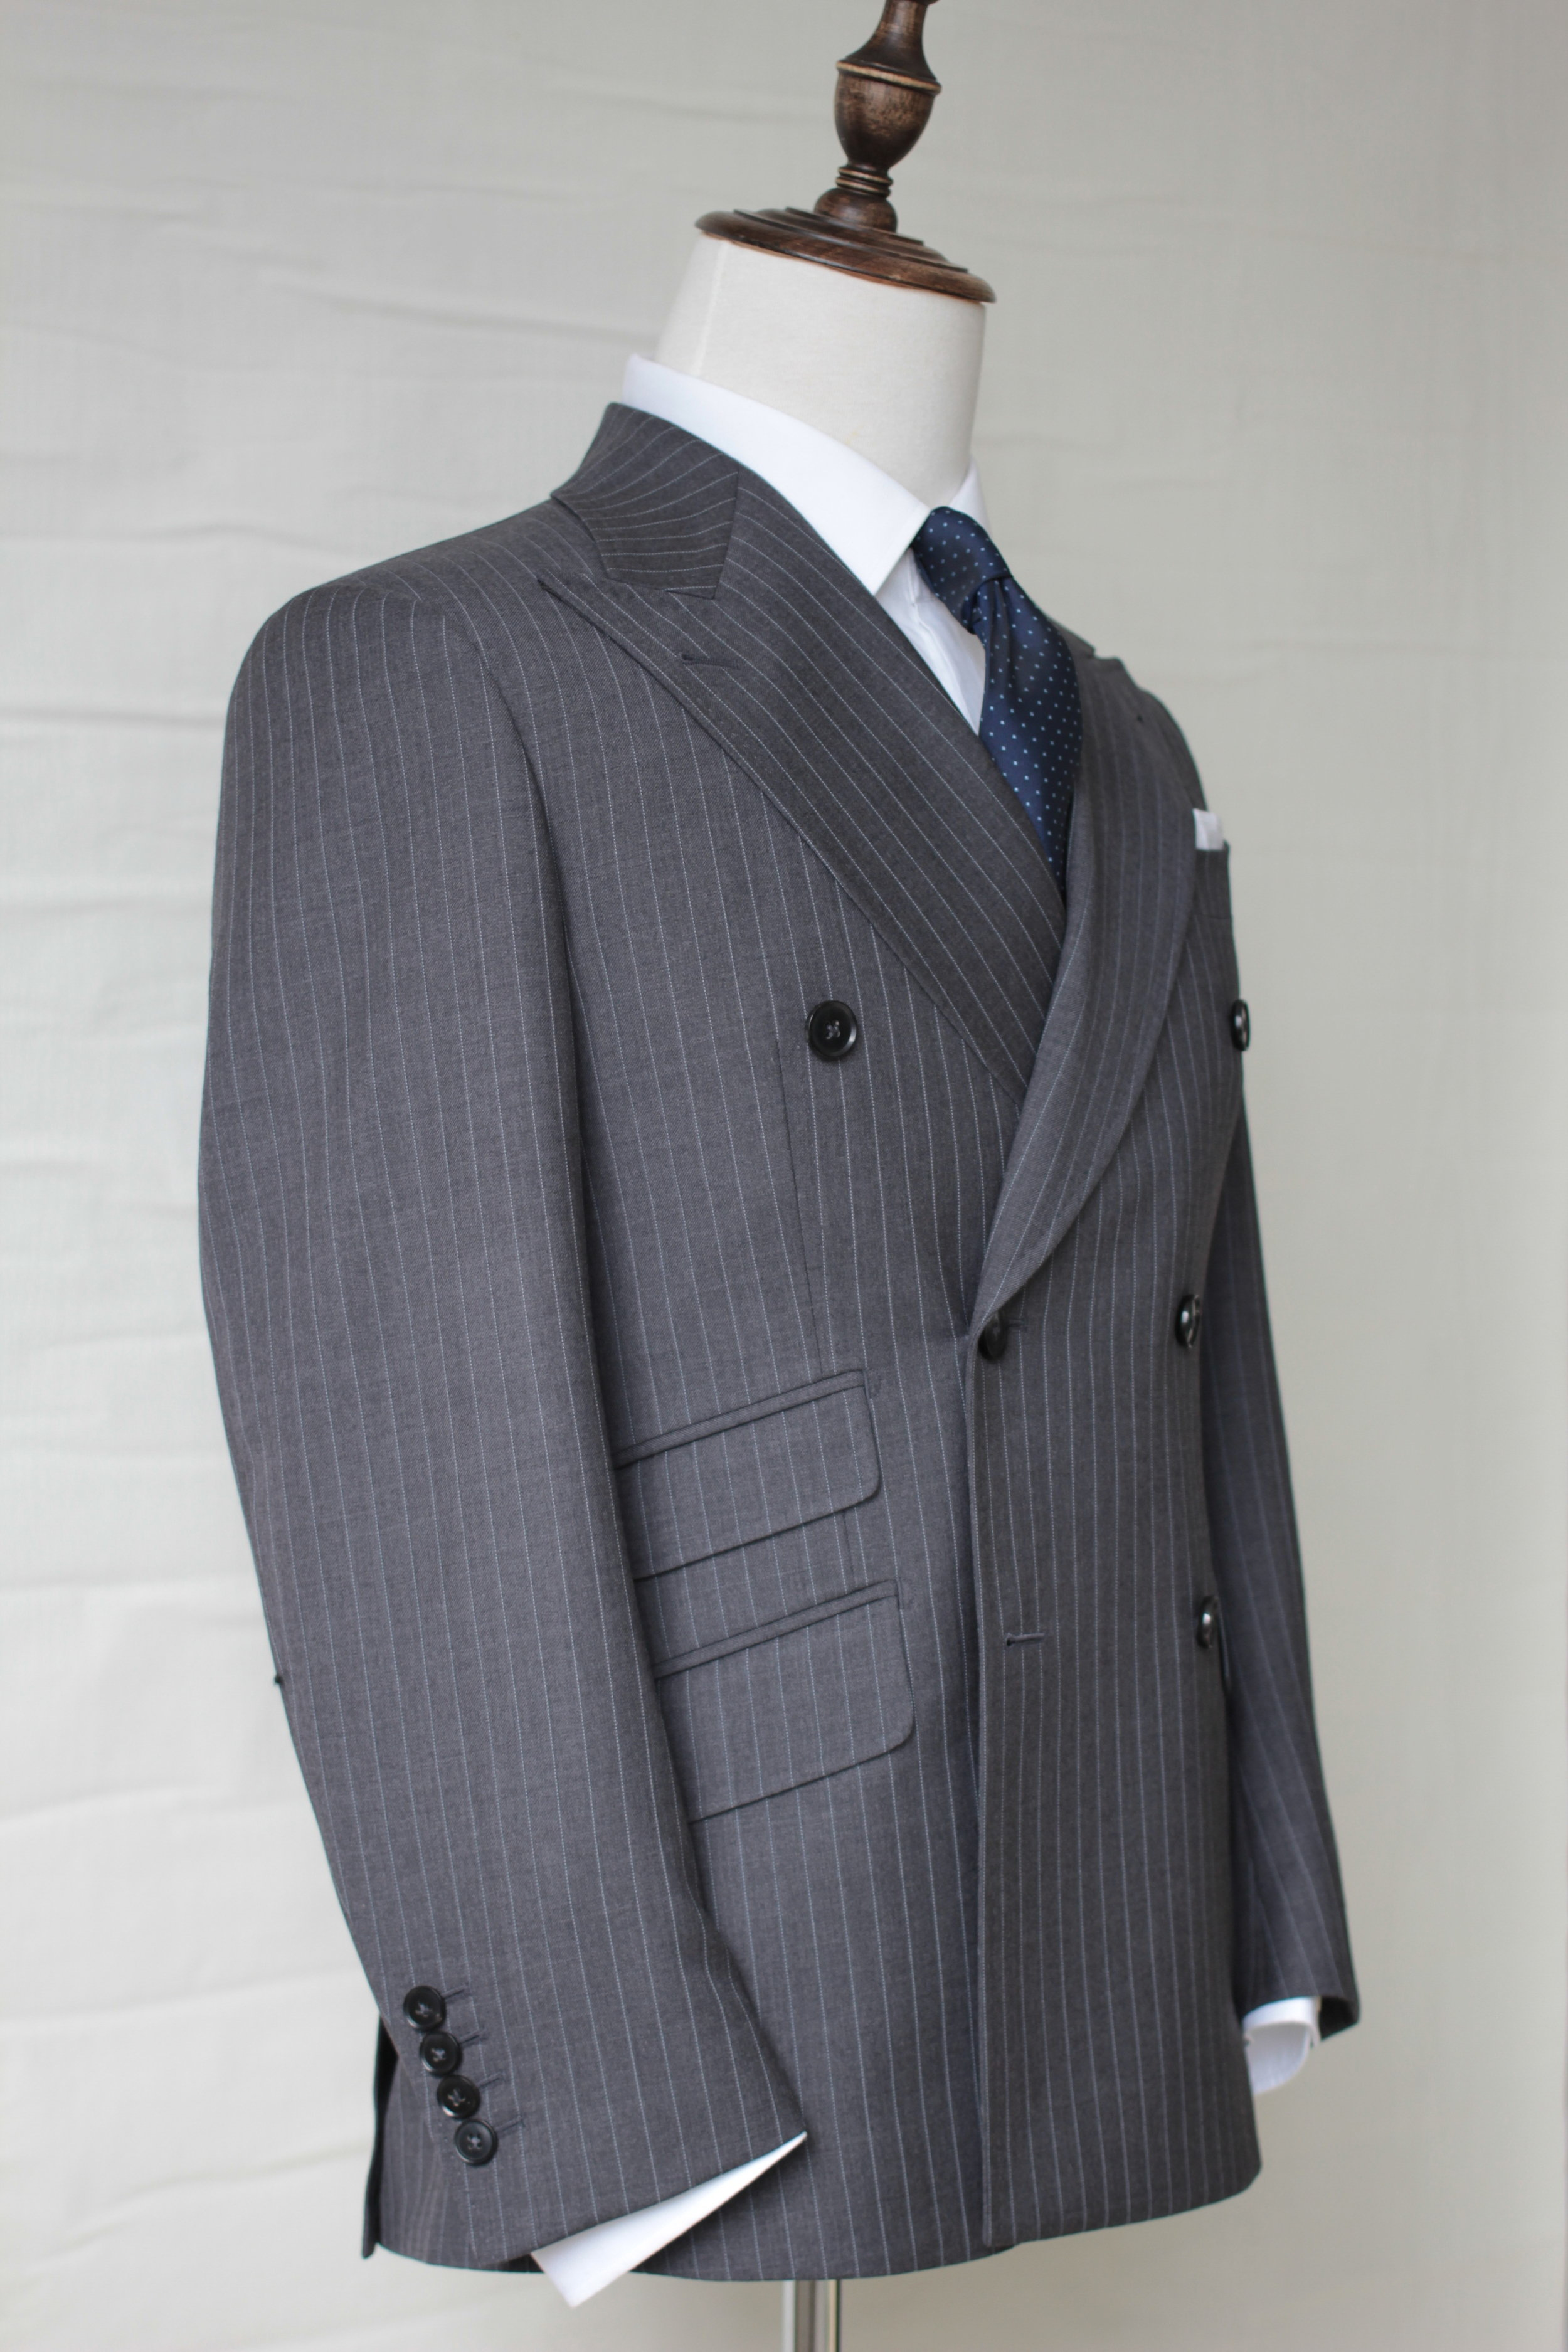 Mr Galahad | Double Breasted Suit | Tailor Made Suits | Singapore Suits | Pinstripe Kingsman suit side view.JPG